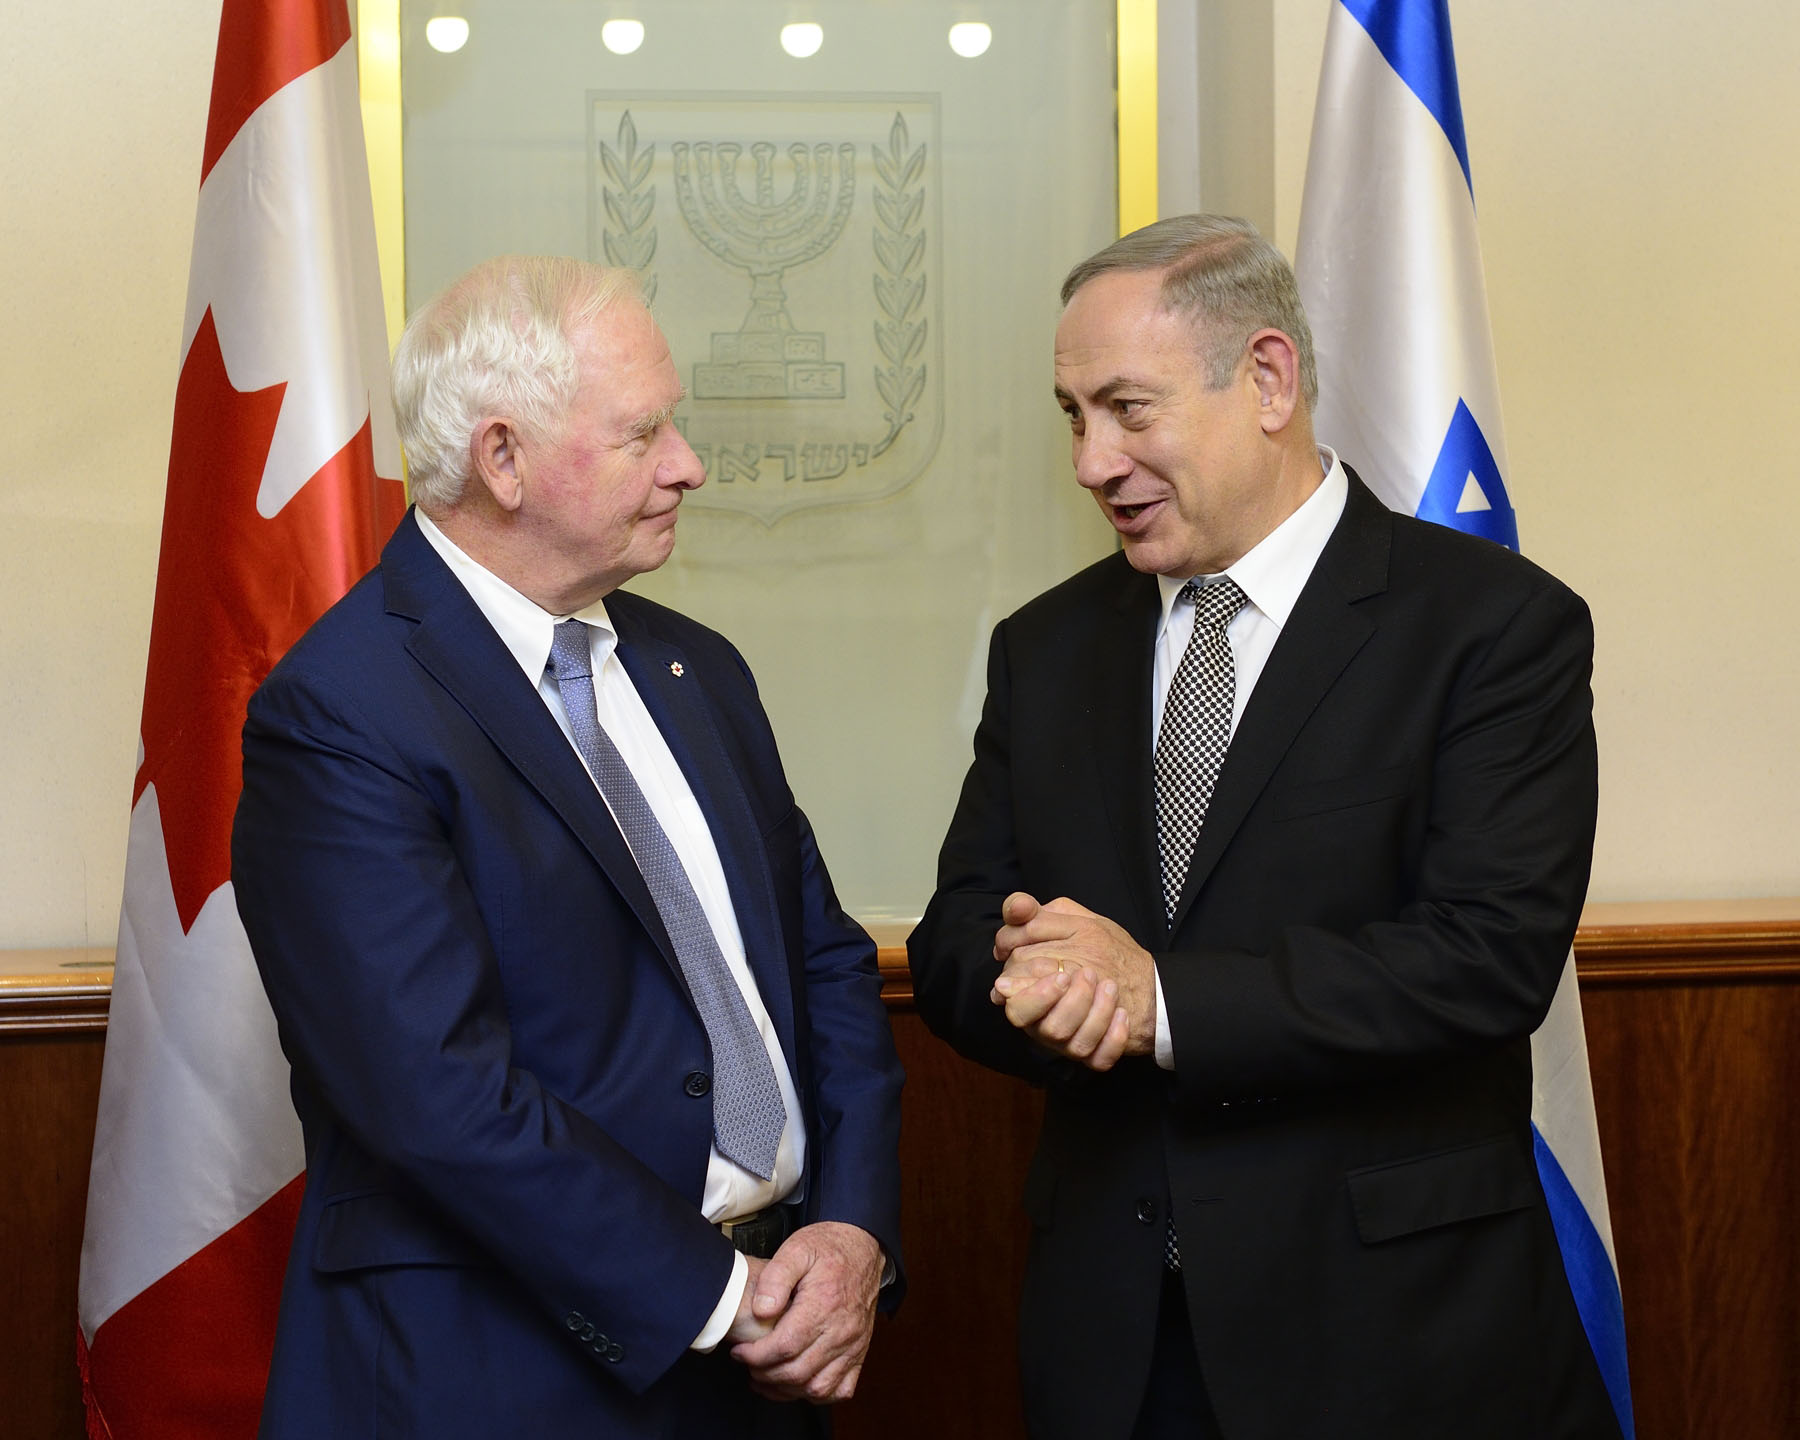 The Governor General met with His Excellency Benjamin Netanyahu, Prime Minister of the State of Israel, to discuss key areas of Israel-Canada engagement.